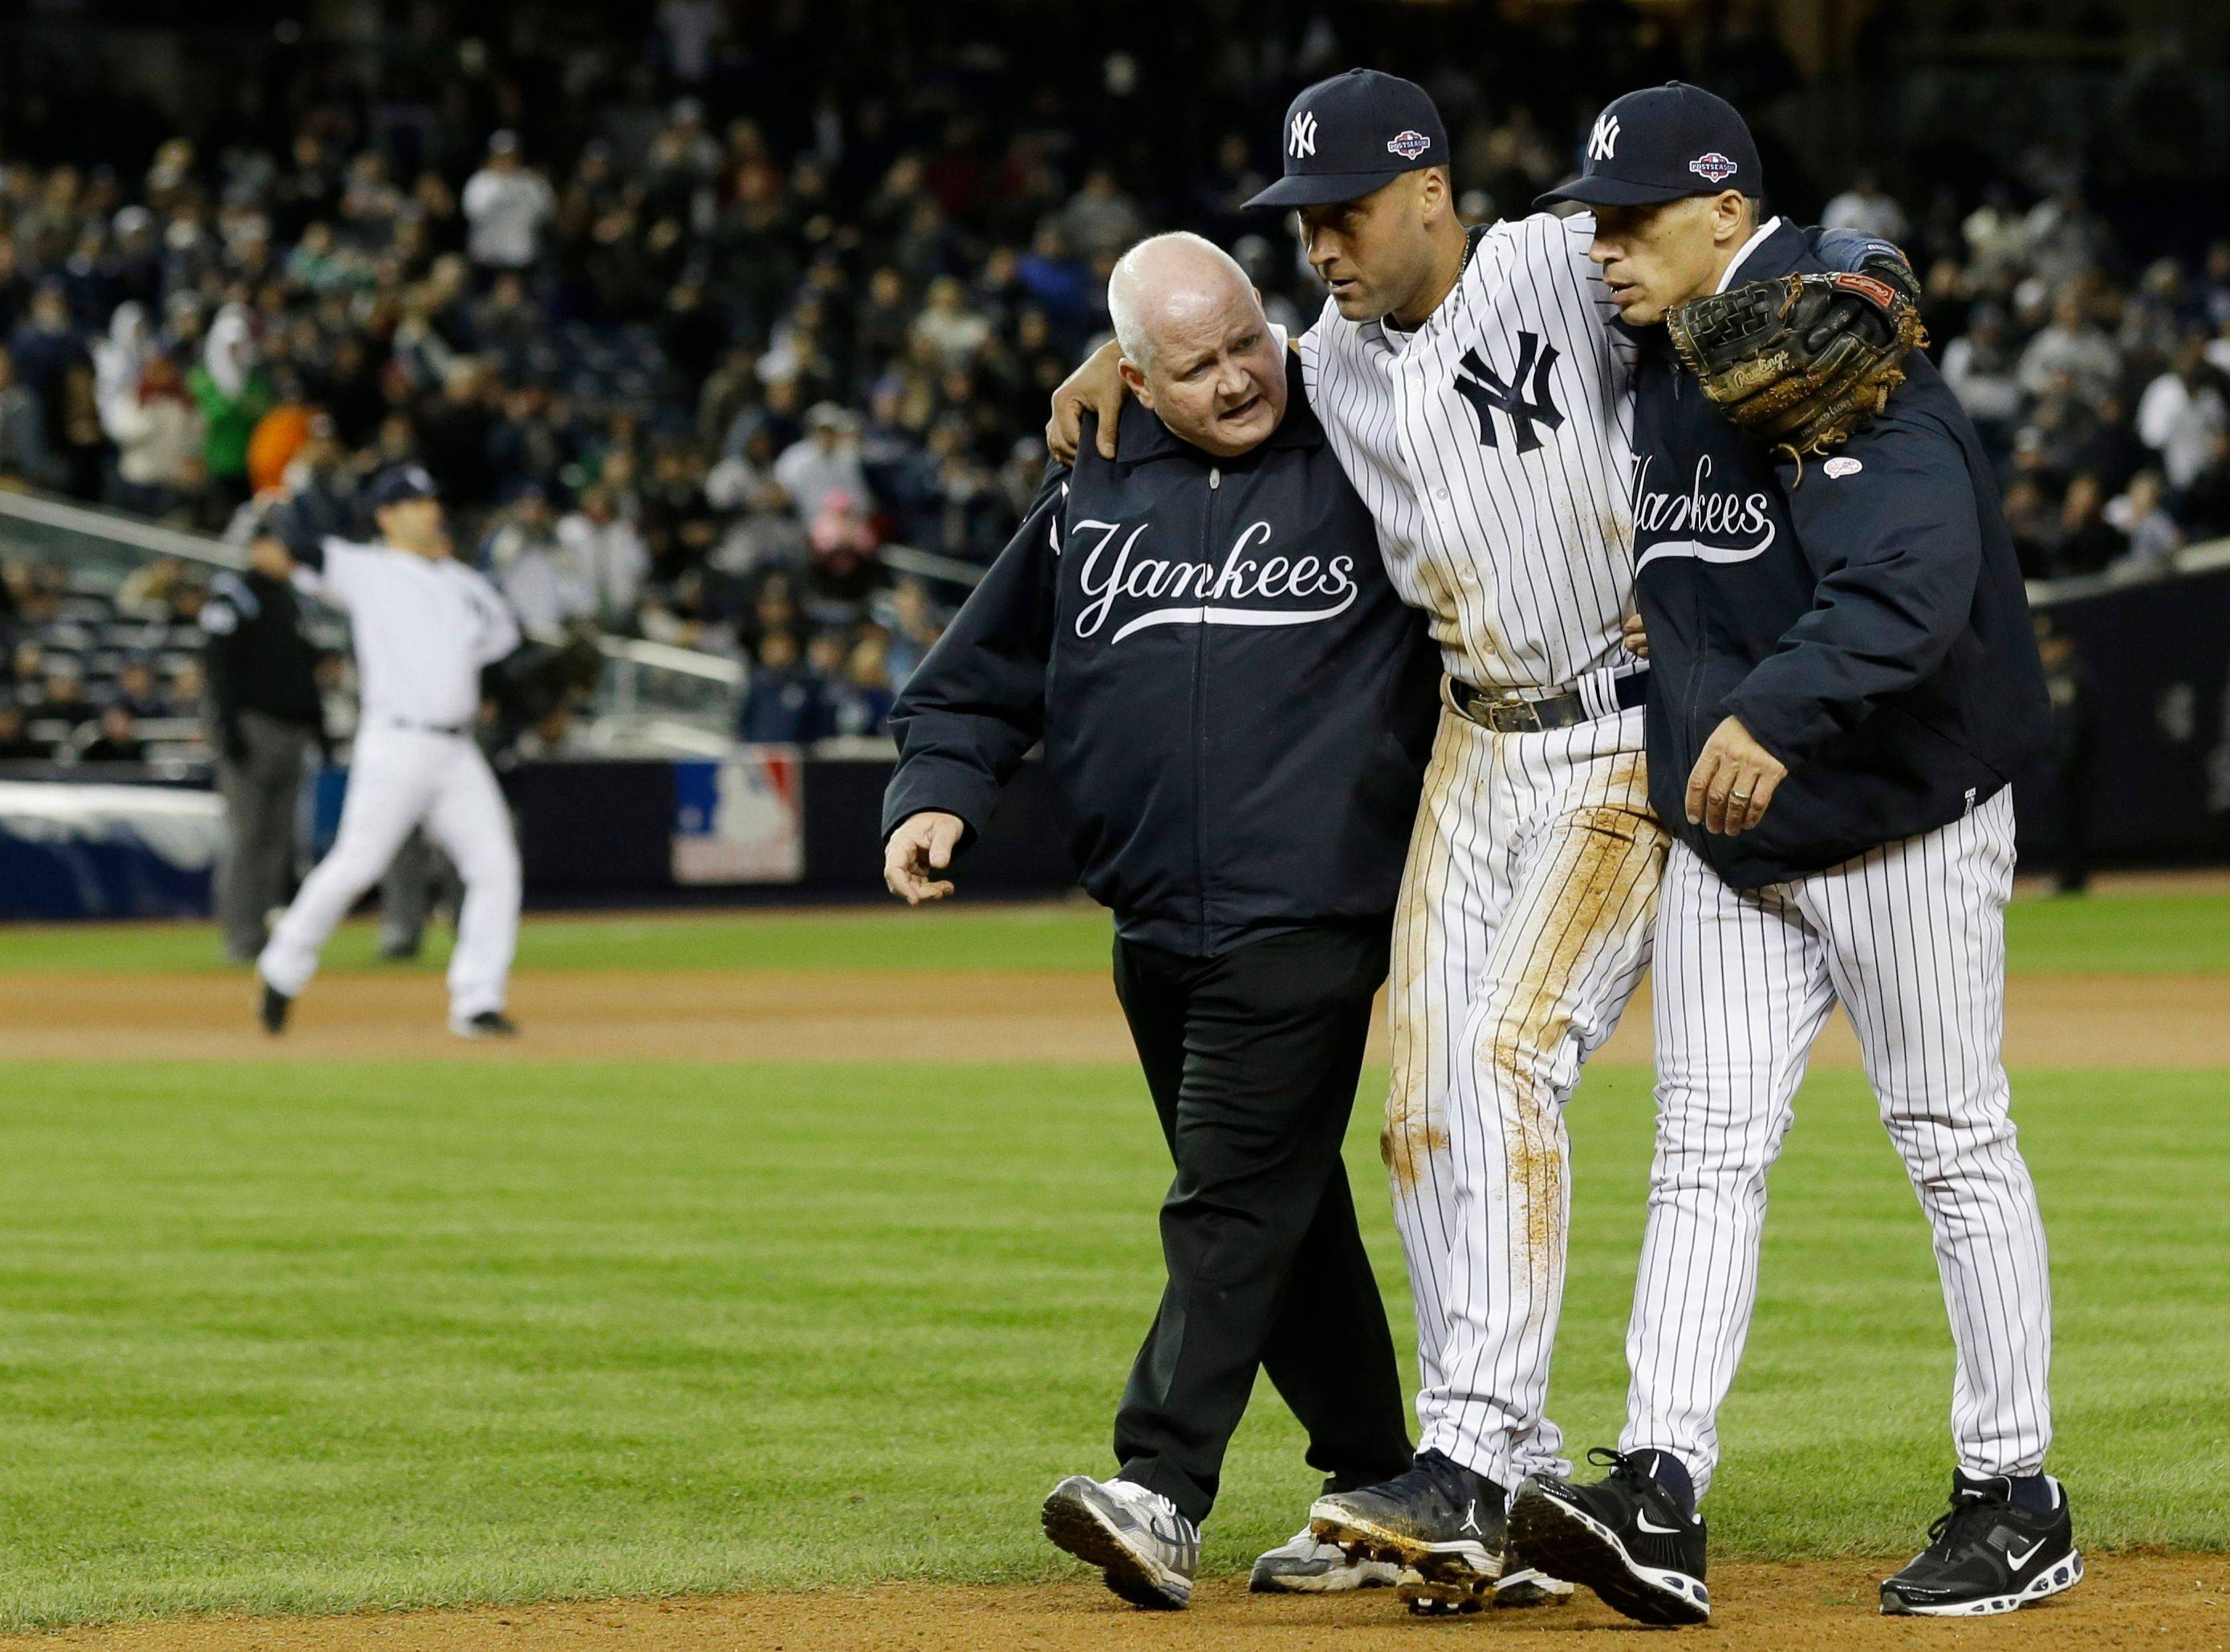 Trainer Steve Donohue, left, and Yankees manager Joe Girardi help Derek Jeter off the field after he suffered a broken ankle late in Saturday's Game 1 of the ALCS.